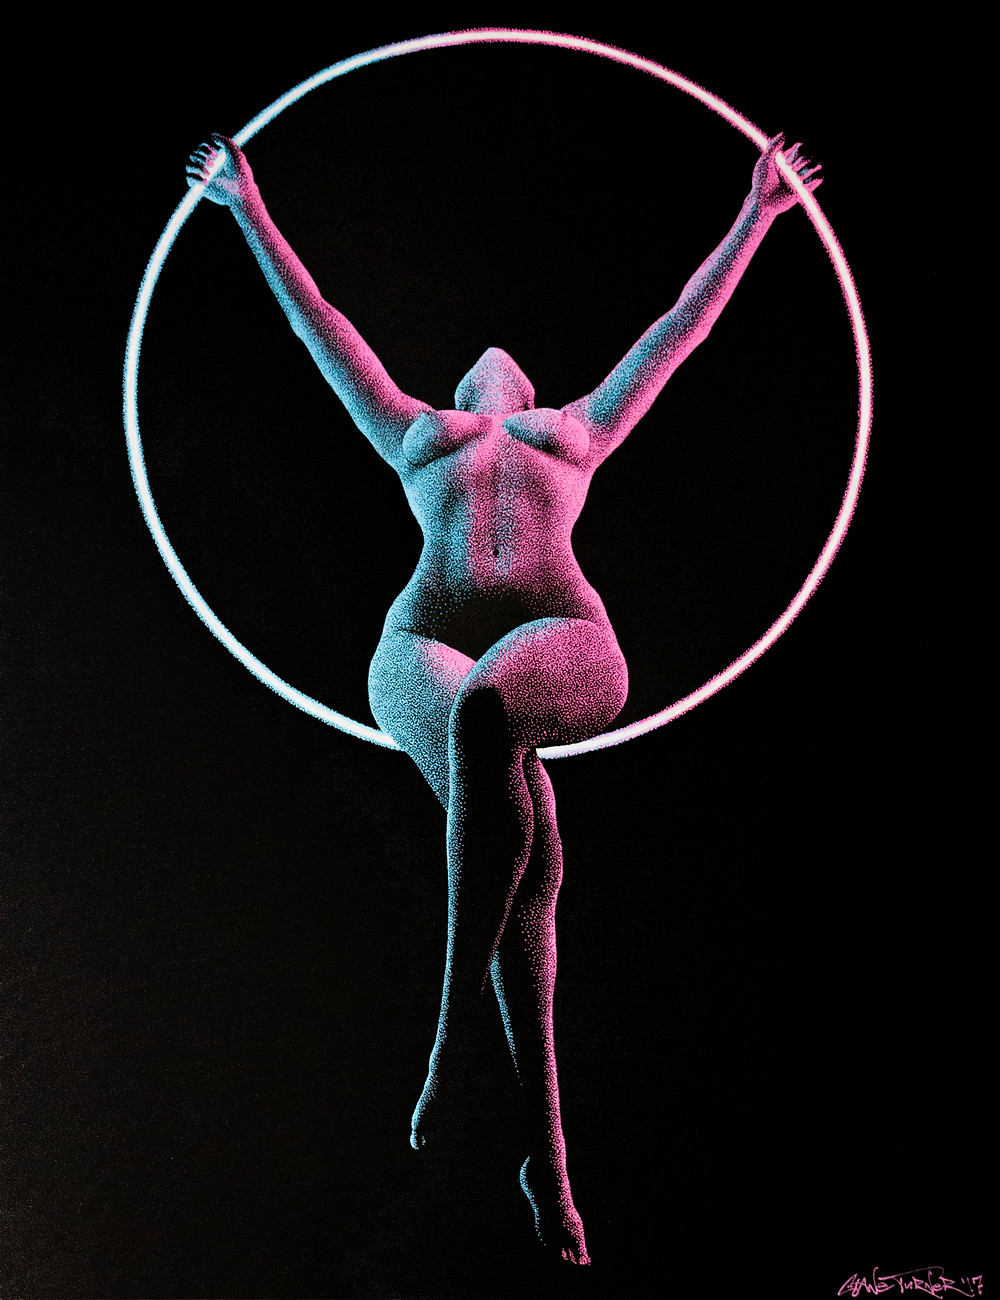 Moving in the Dark 2 by Shane Turner Art. Multi colour light gel. Female nude figure doing aerial ring acrobatics. Pointillism stippling drawing with dots.